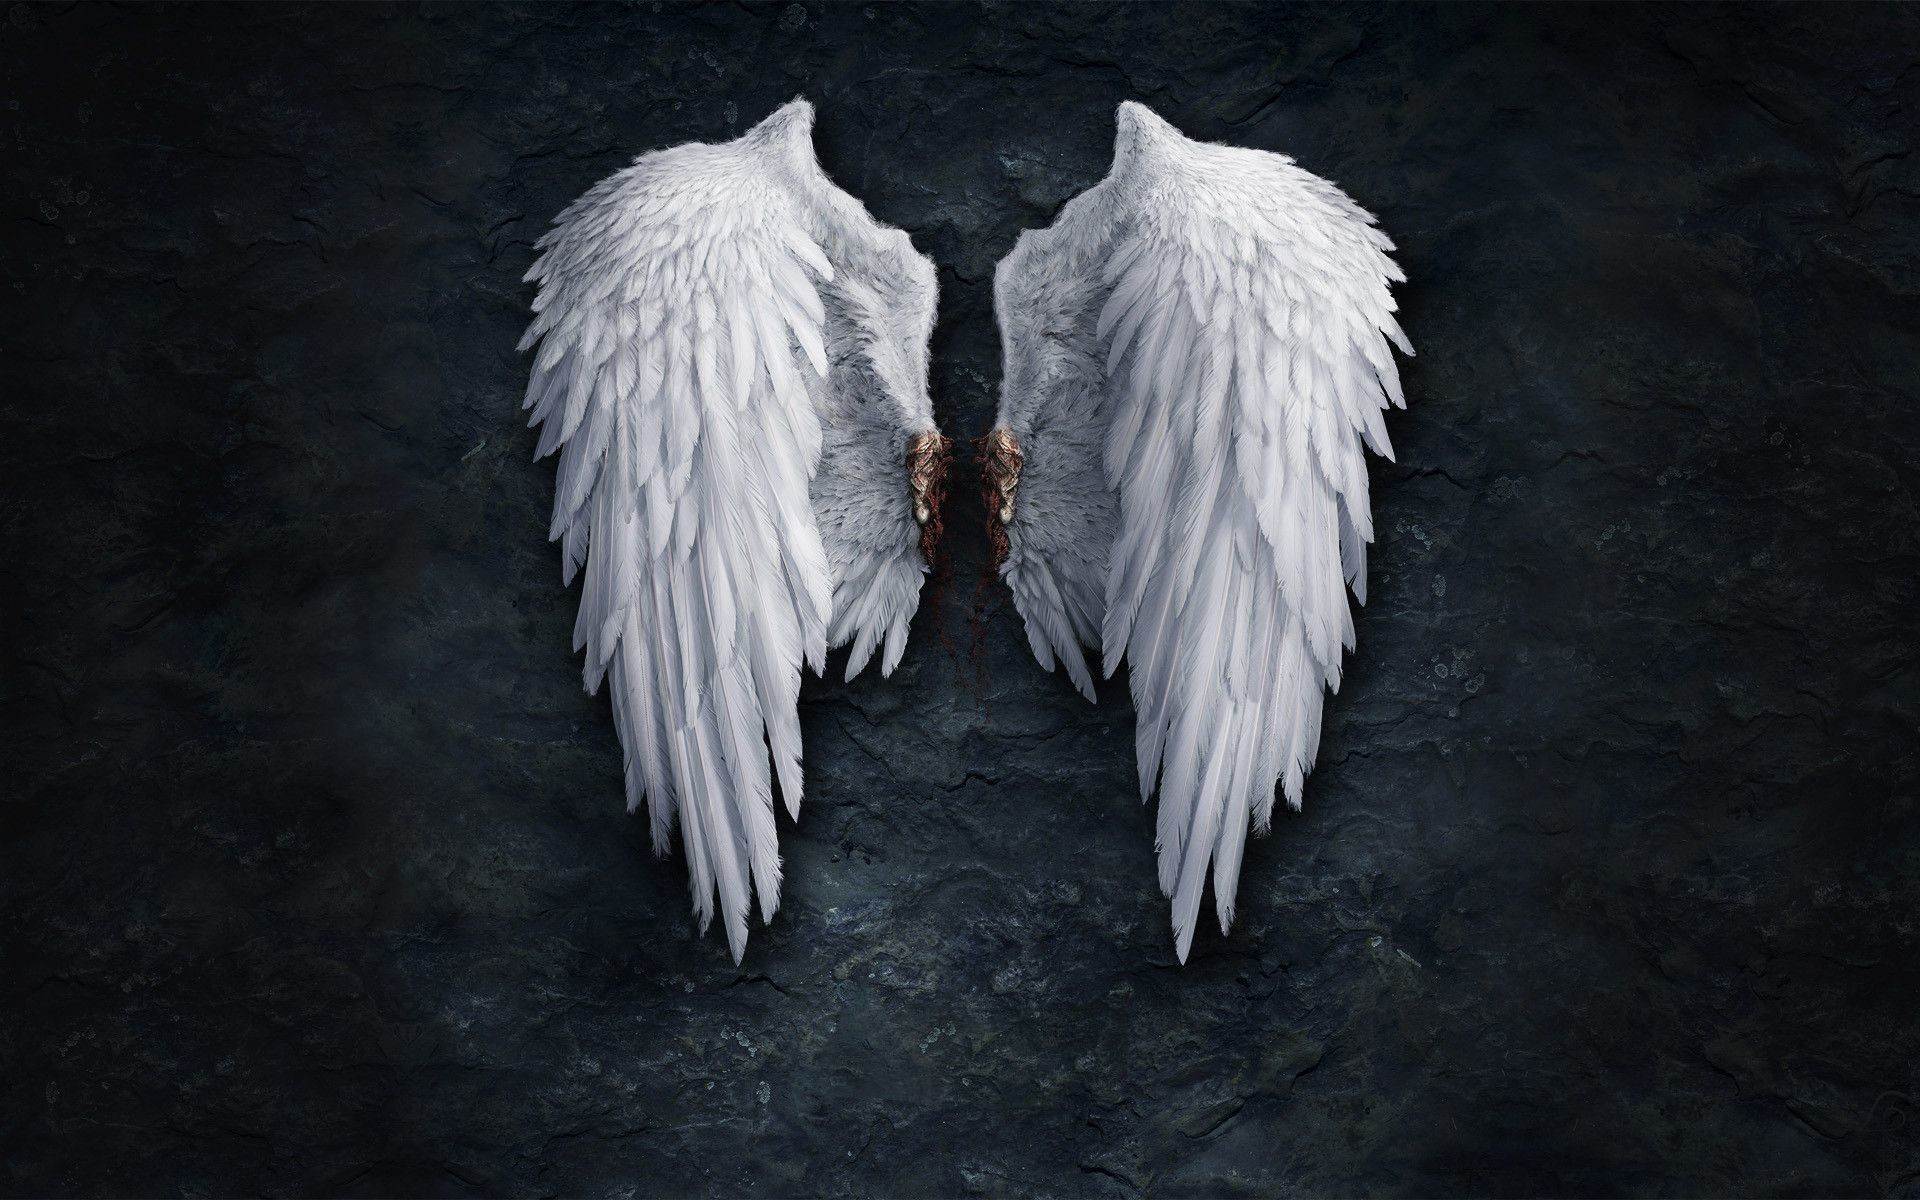 Angel Wings Background 49 images 1920x1200